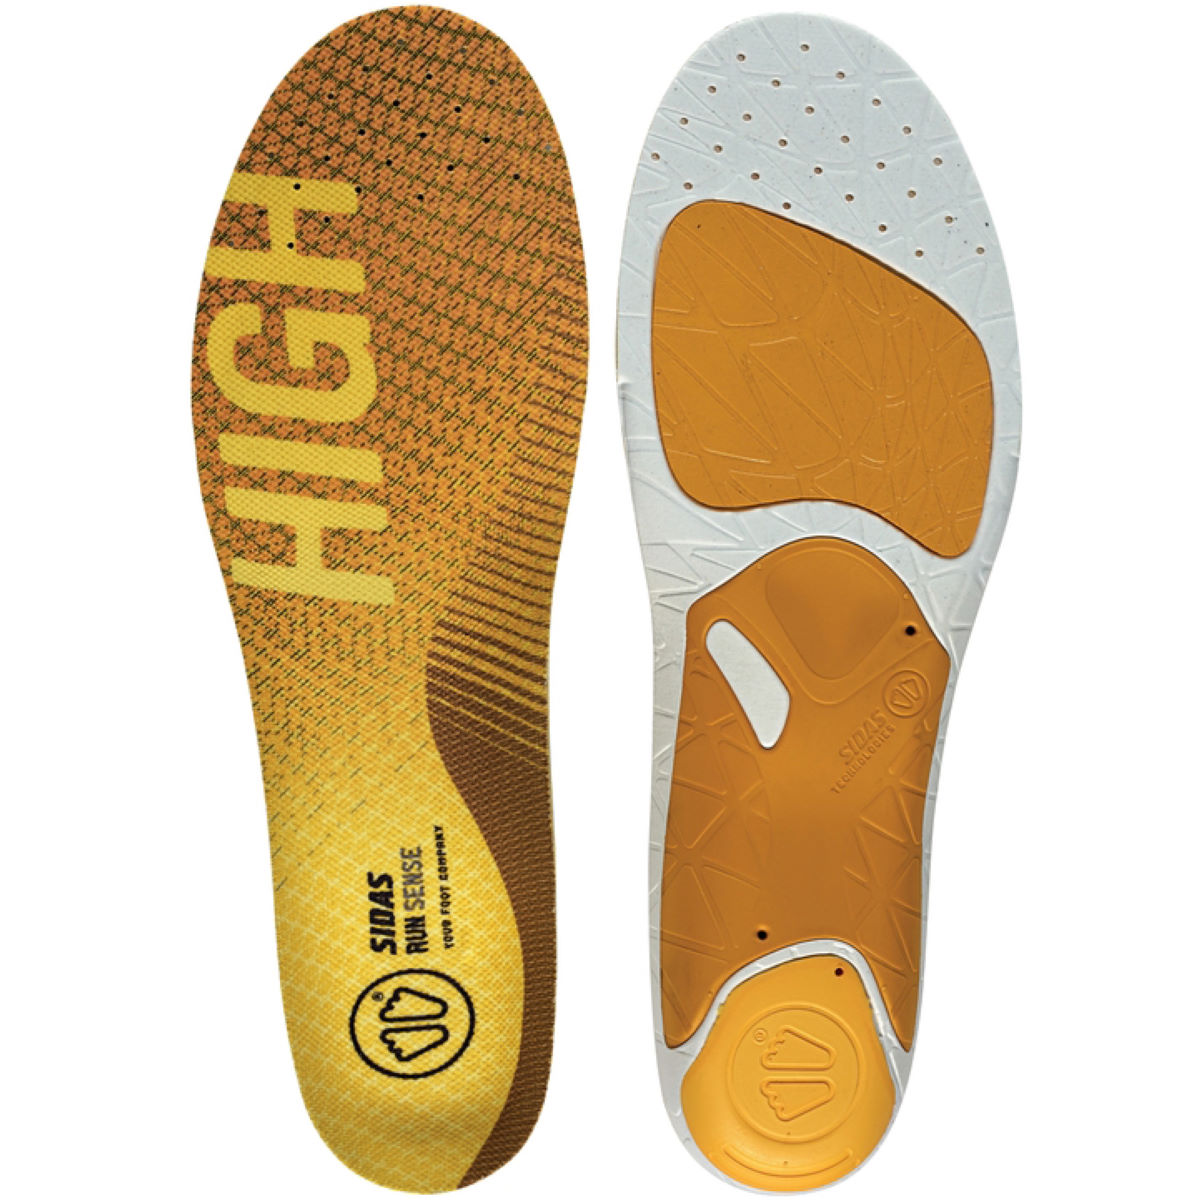 Sidas 3 Feet High Arch Run Sense Insole - Plantillas